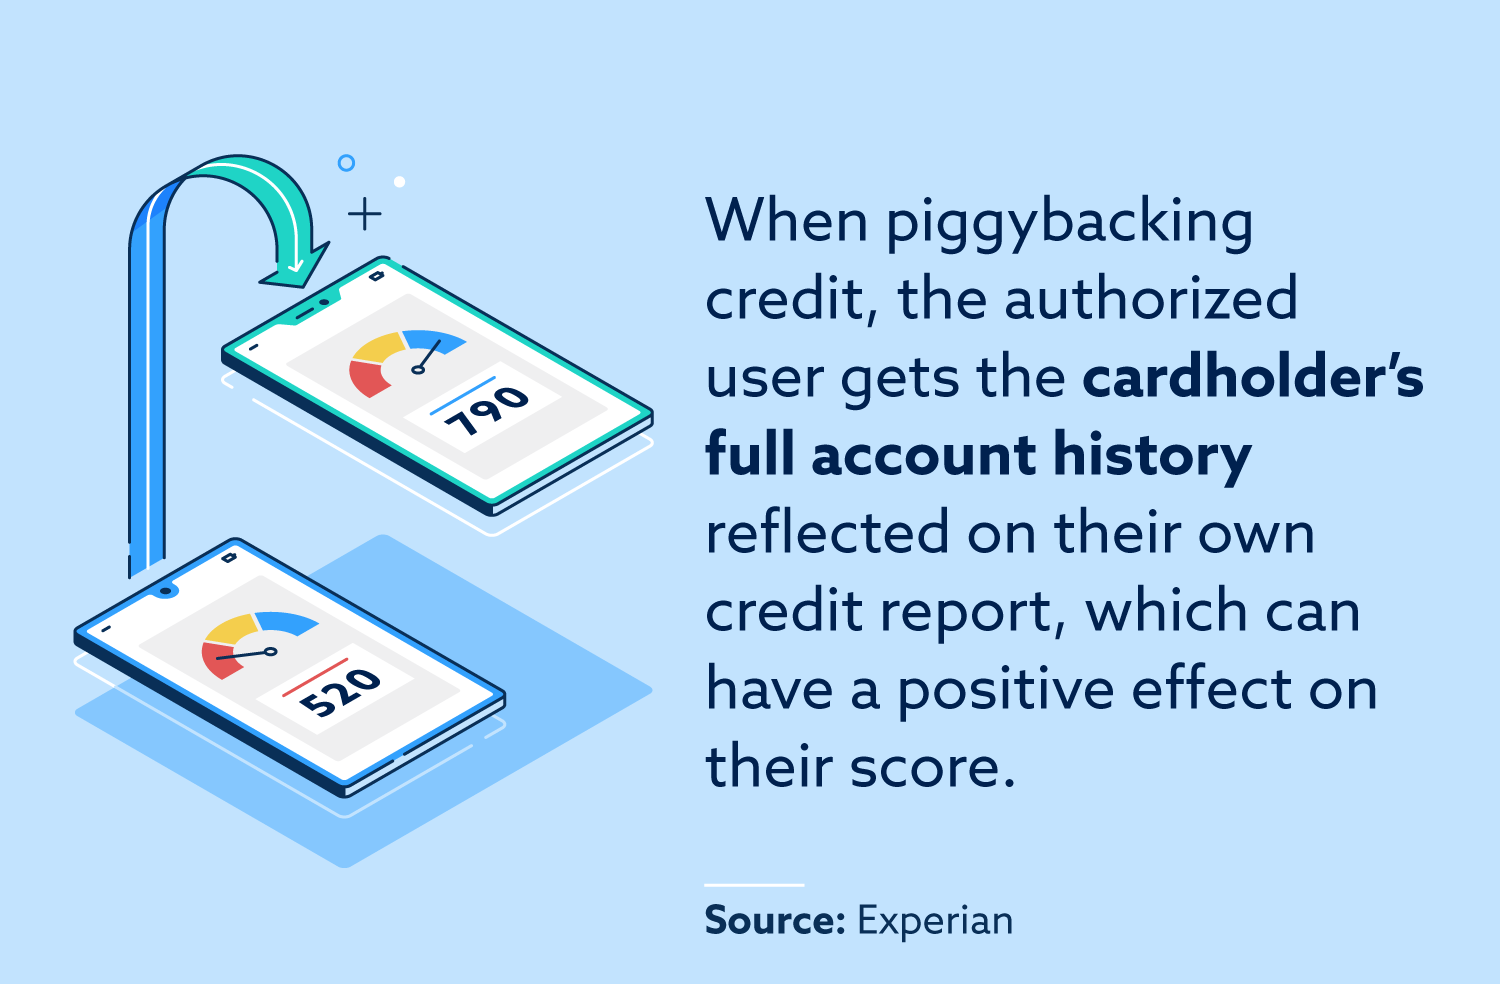 When piggybacking credit, the authorized user gets the cardholder's full account history reflected on their own credit report, which can have a positive effect on their score.